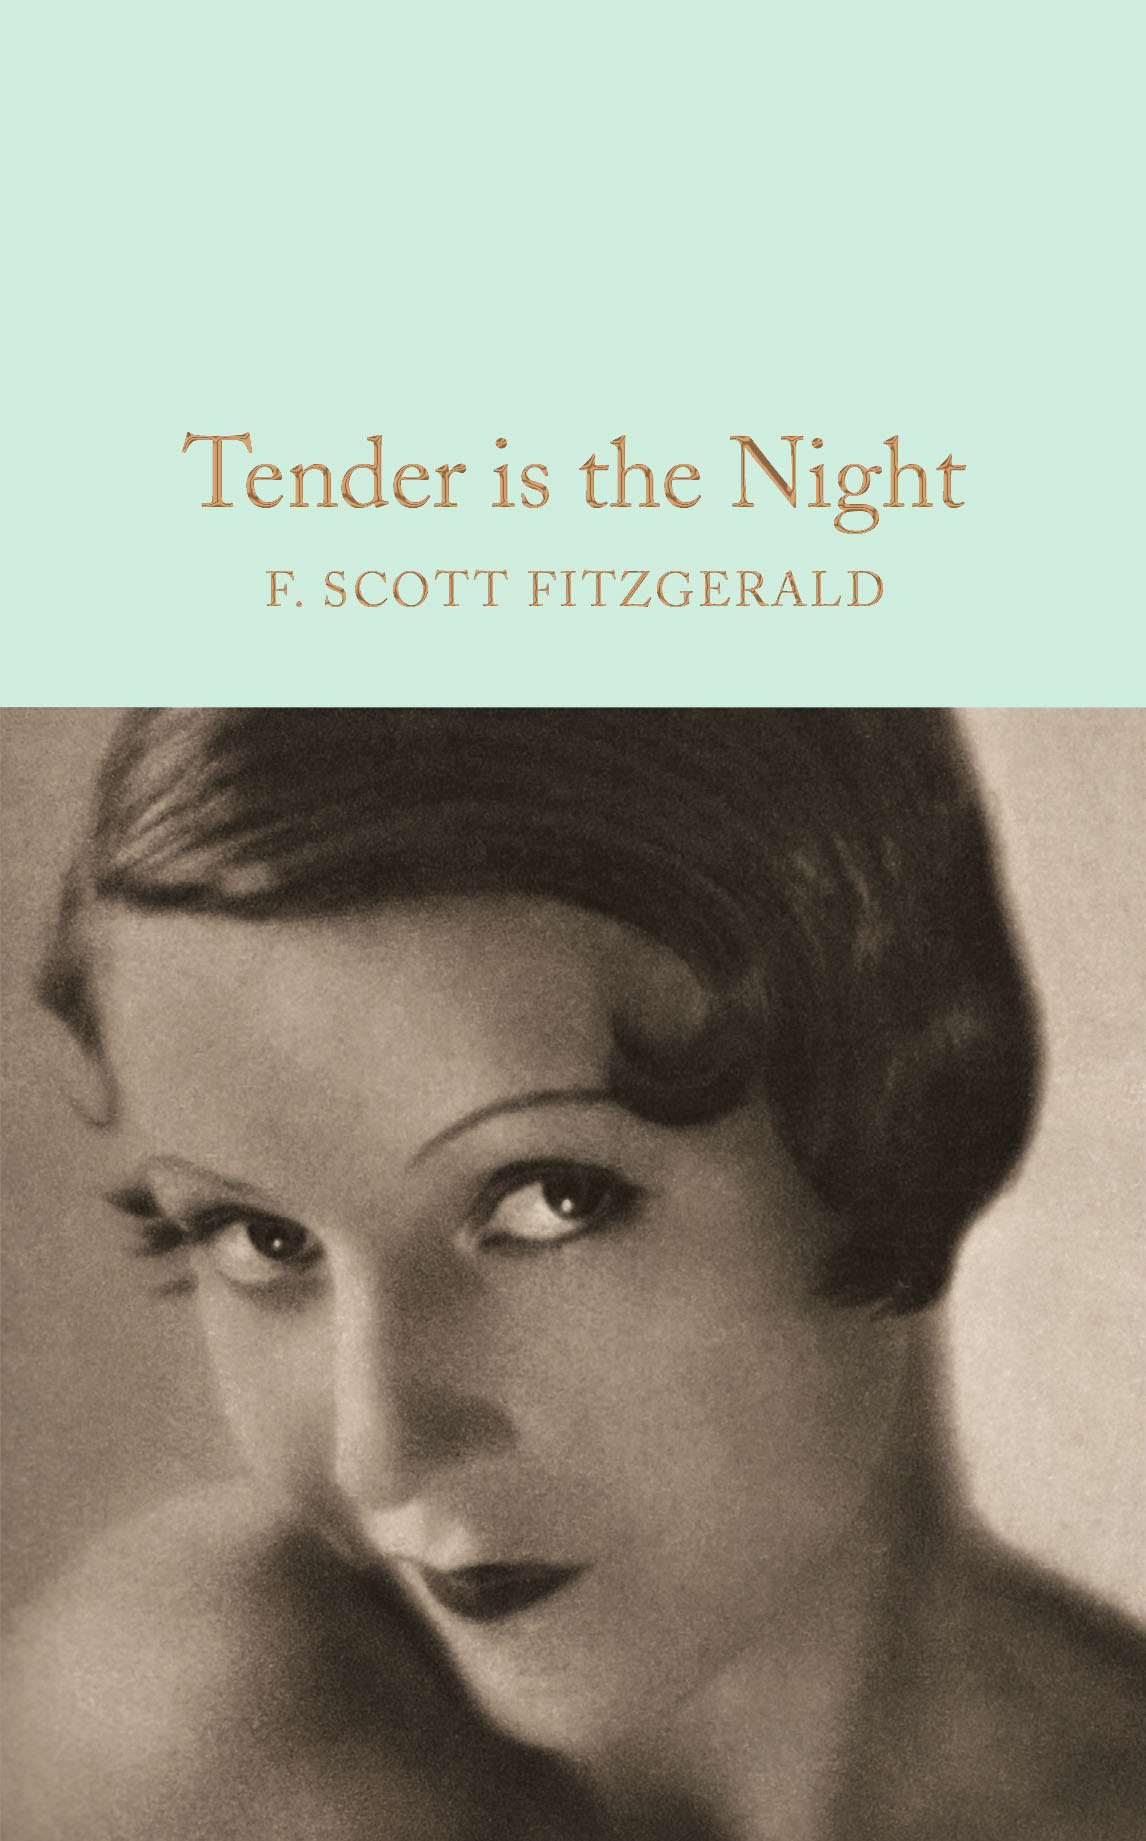 Tender is the Night the story of the night